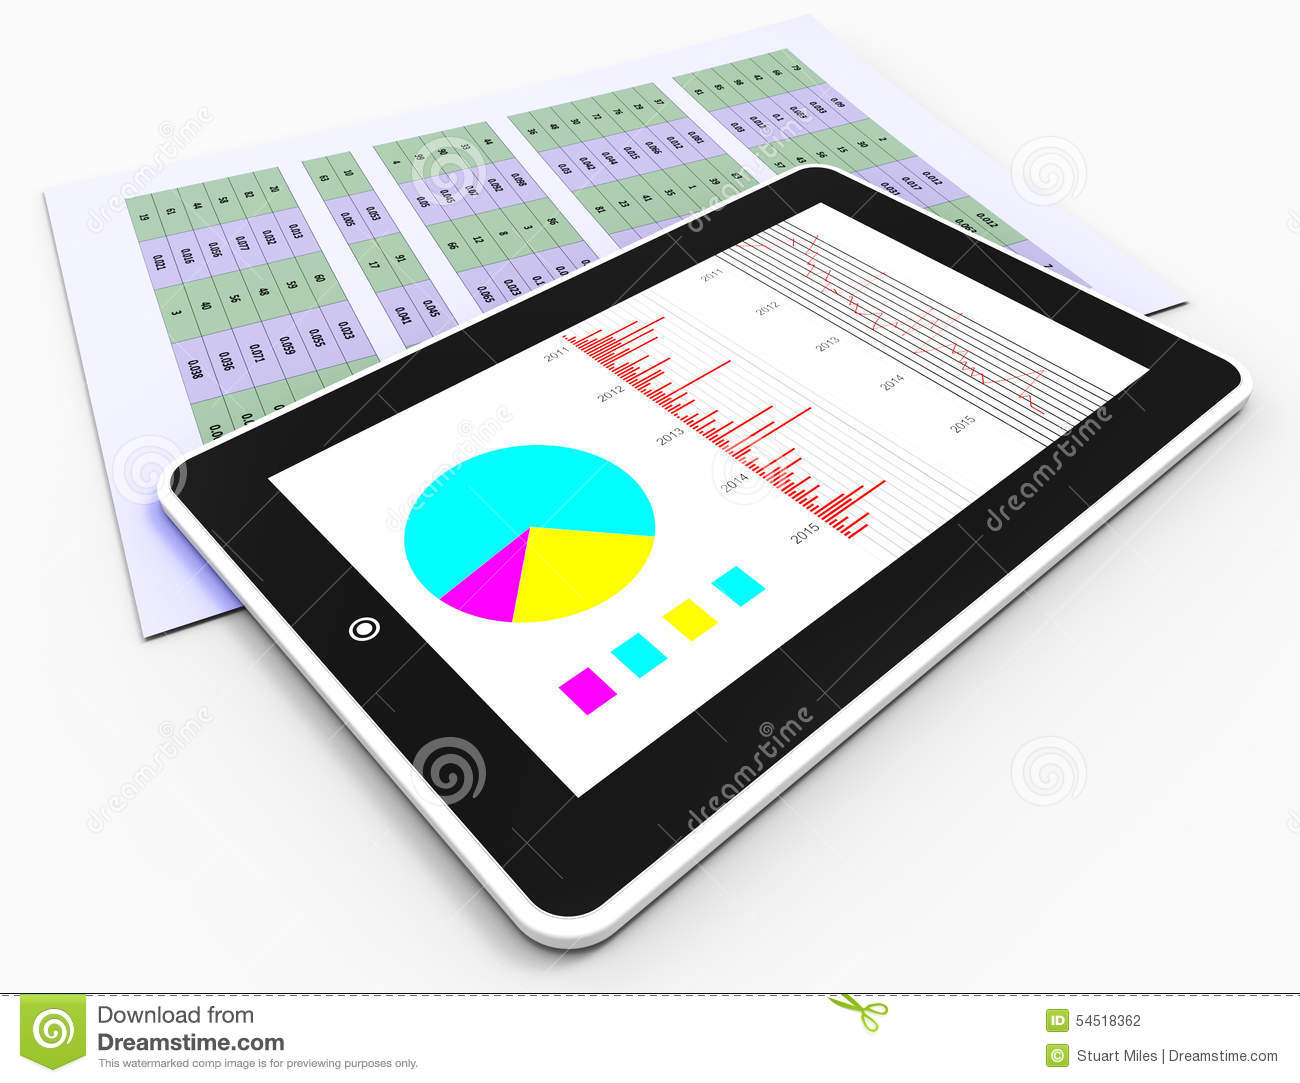 micro analysis tablet industry Figure 5: revenue by geography and segment, 2012 source: financial analysis shares of apple in mobile market and tablet market have increased from 48% to 60 %, which is far better than its competitors (google android.